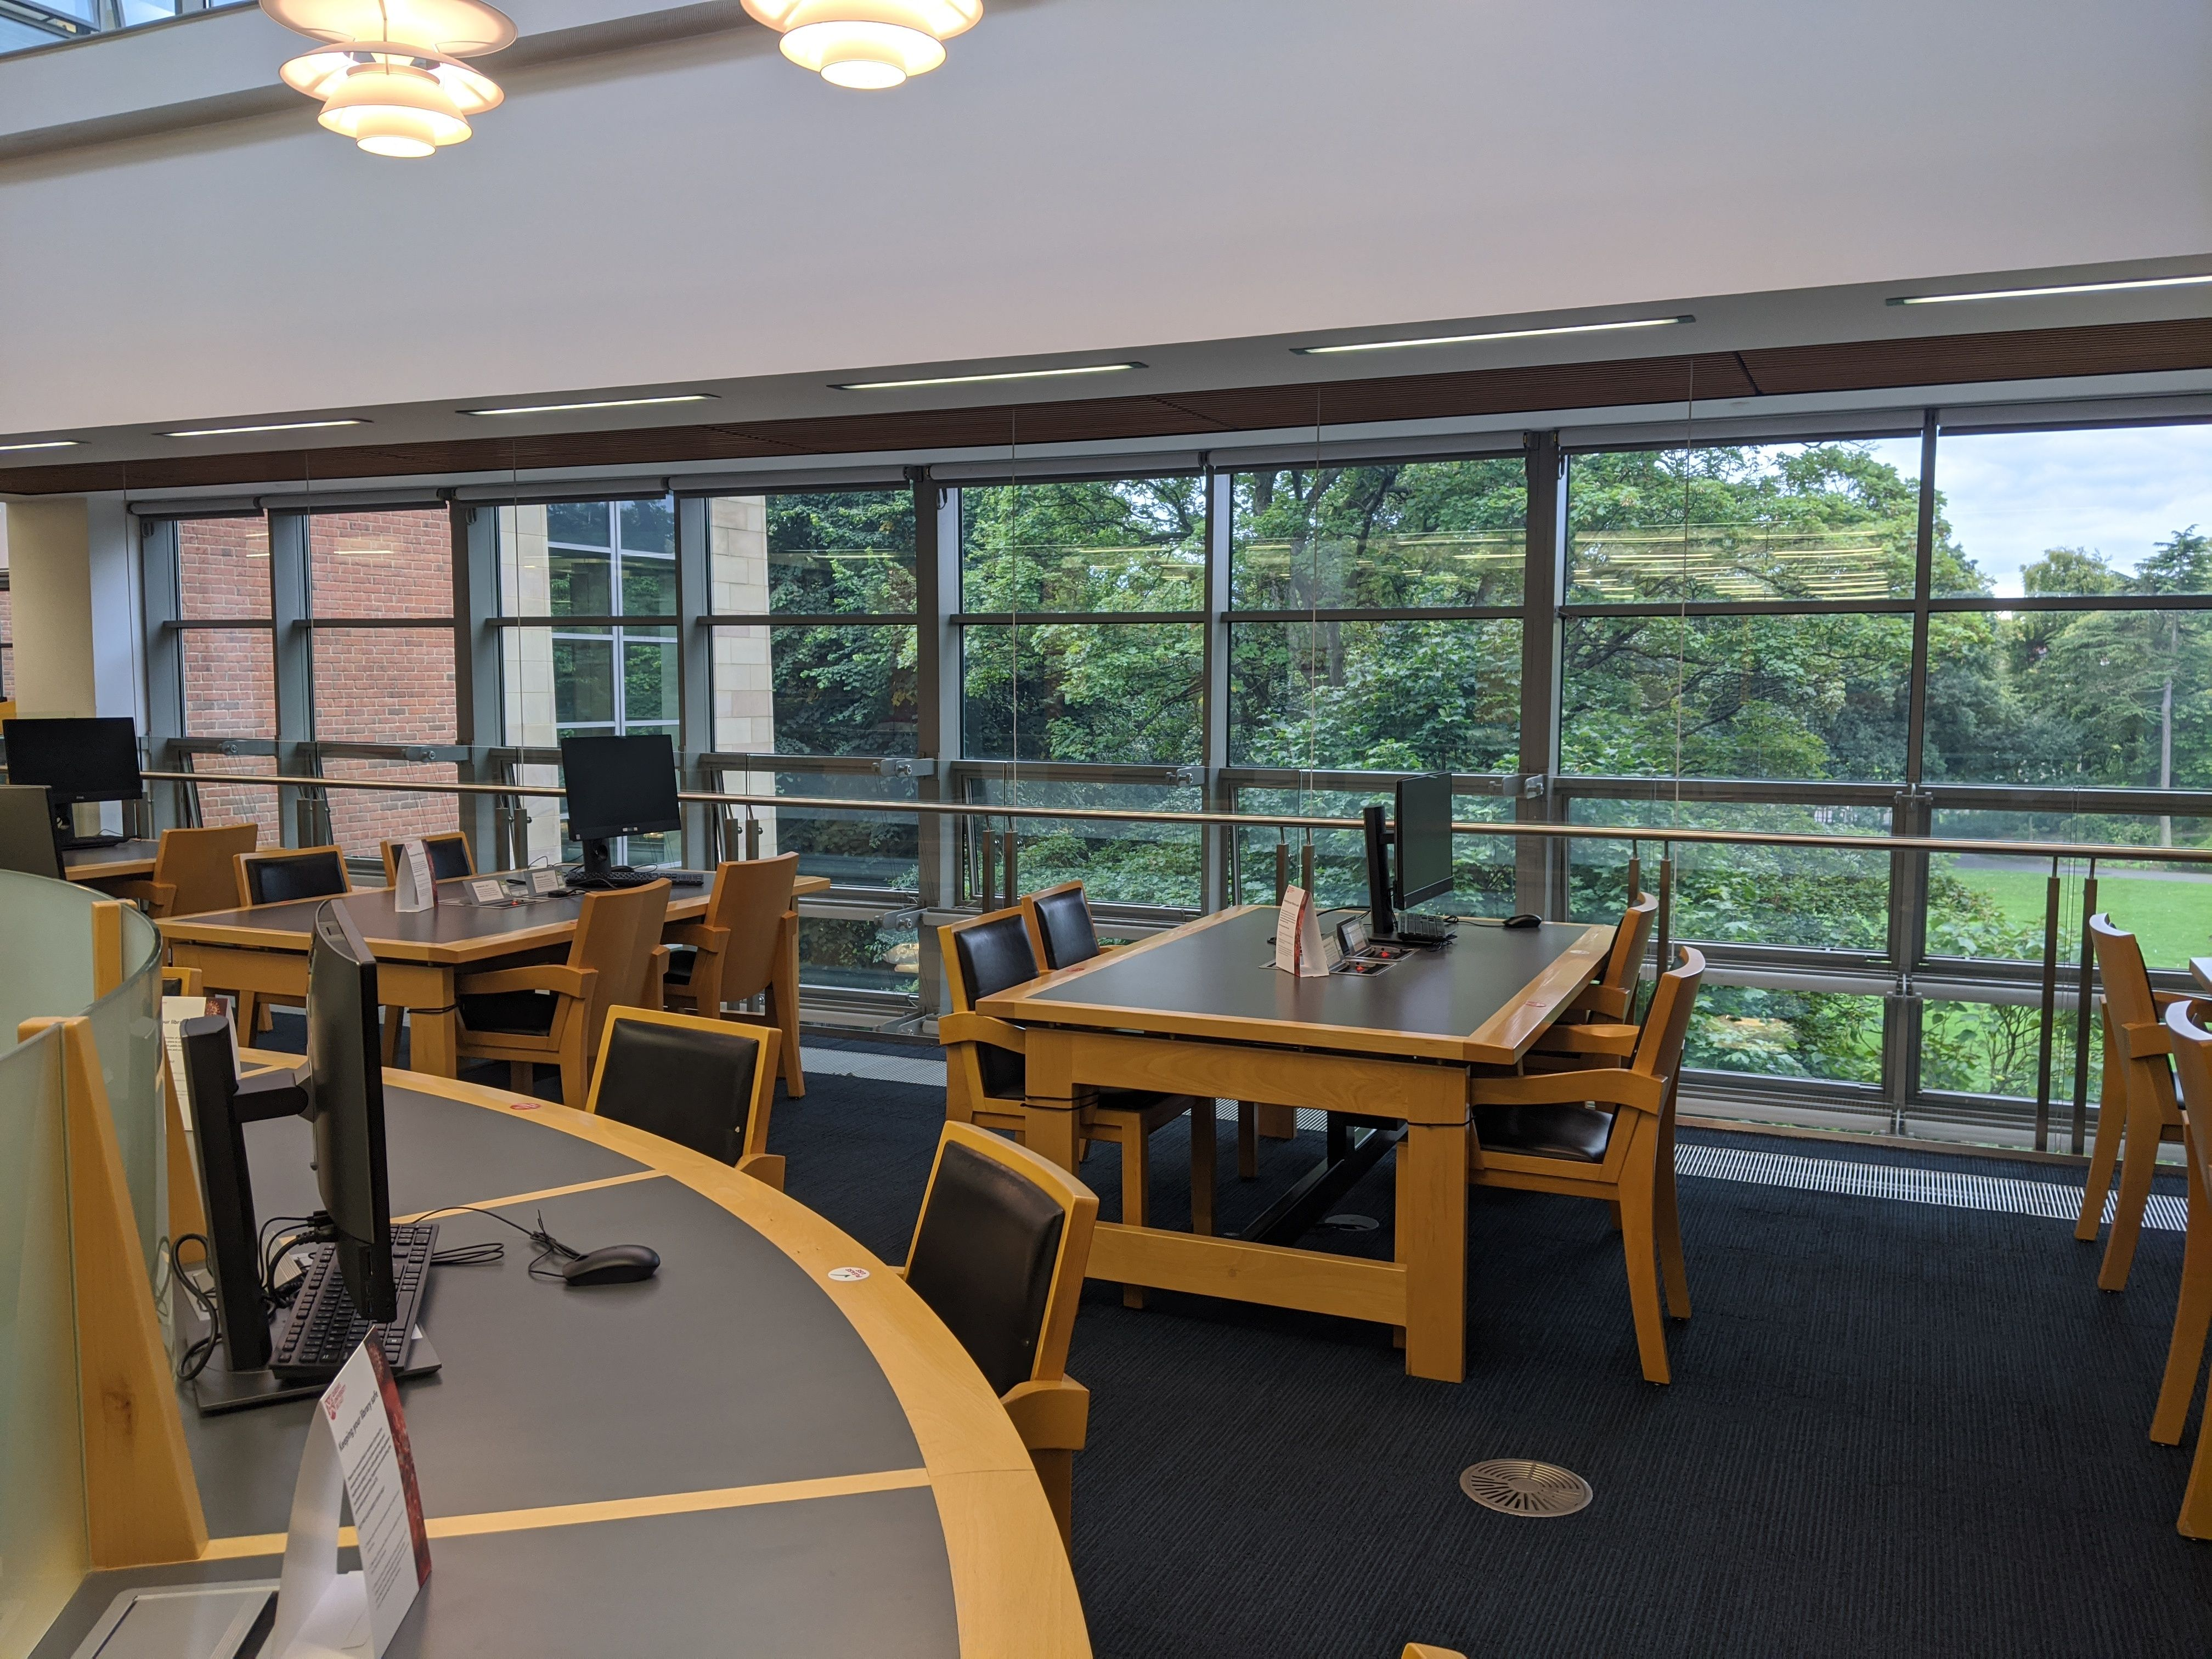 Study spaces in the McClay Library